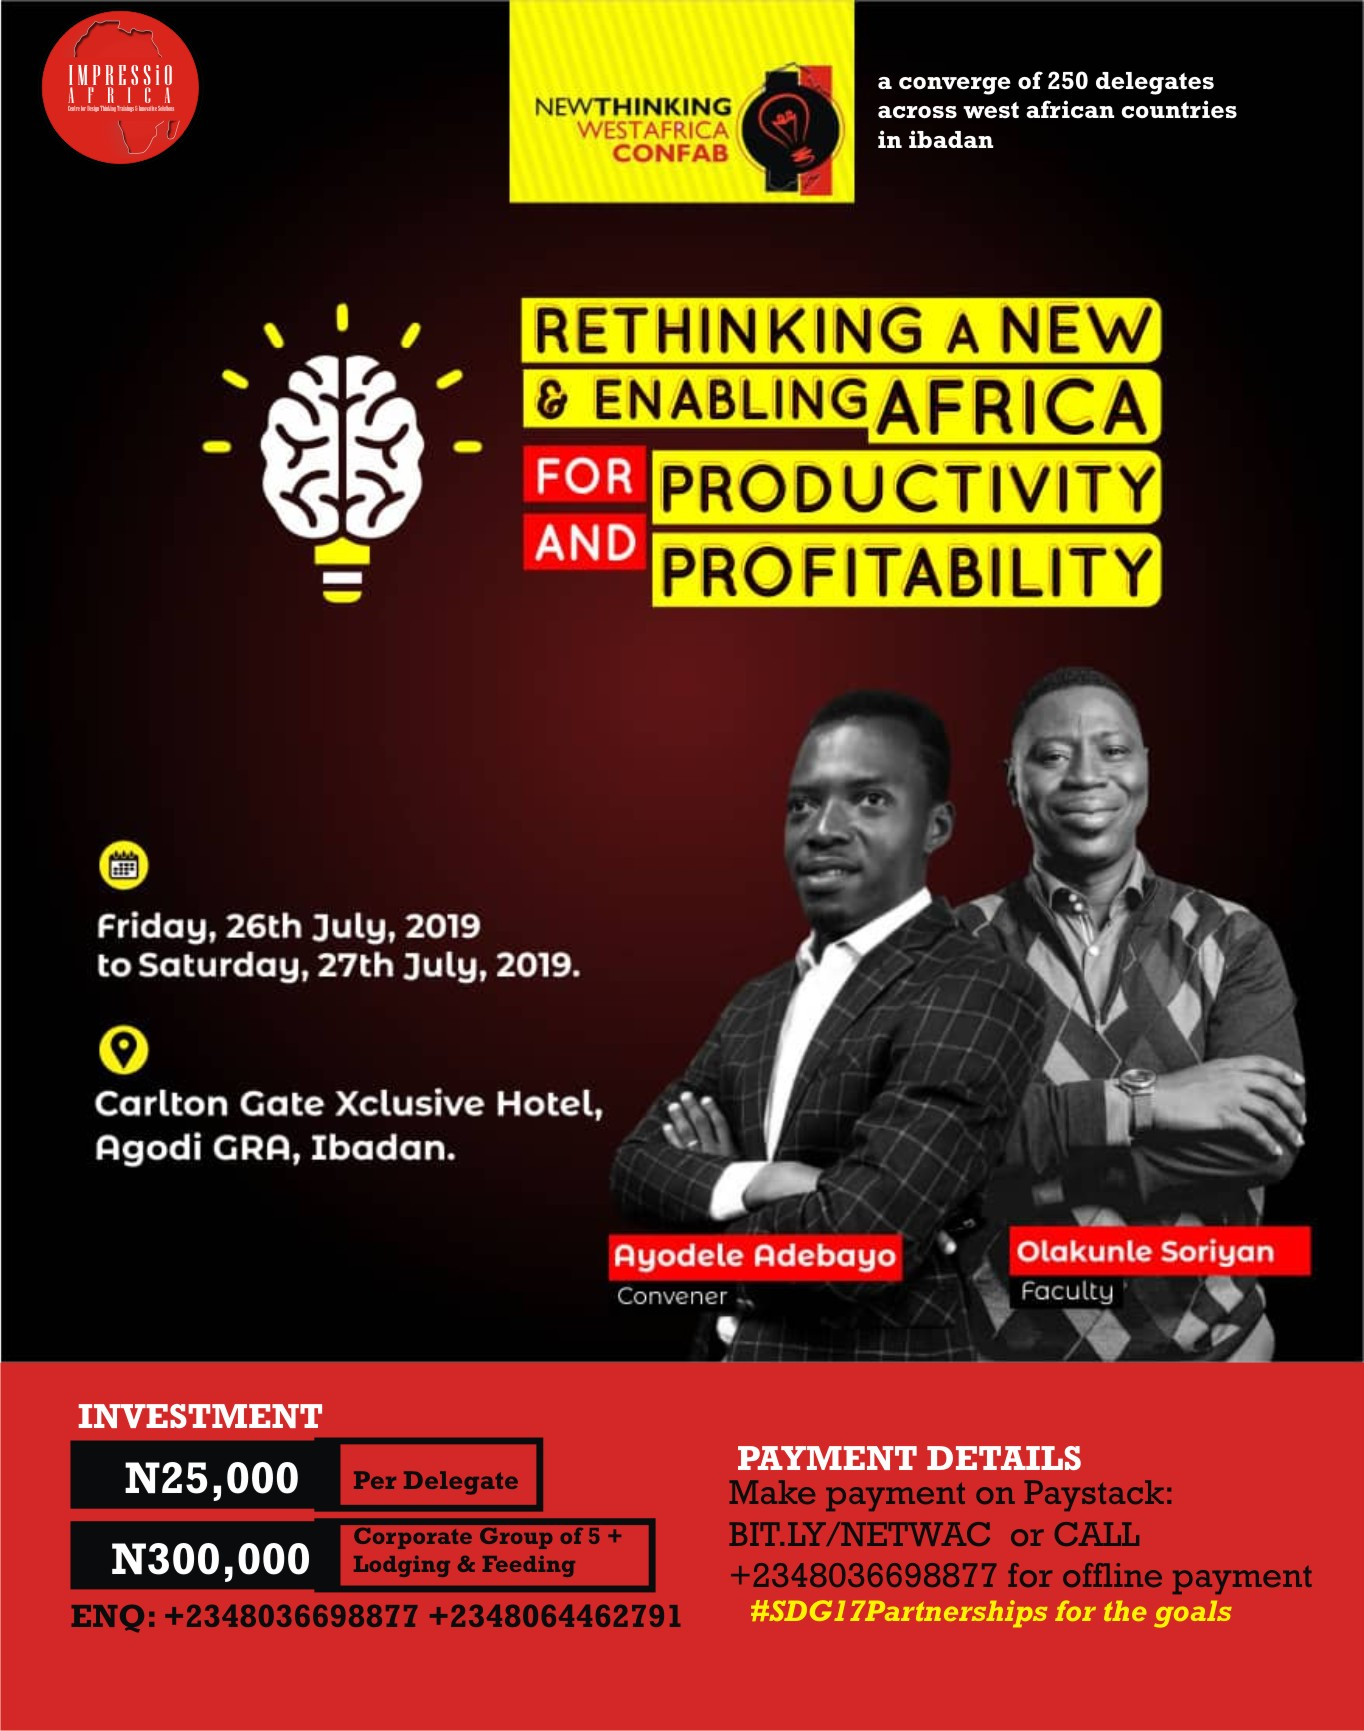 NEWTHINKING WEST AFRICA CONFAB Post free event in Nigeria using tickethub.ng, buy and sell tickets to event